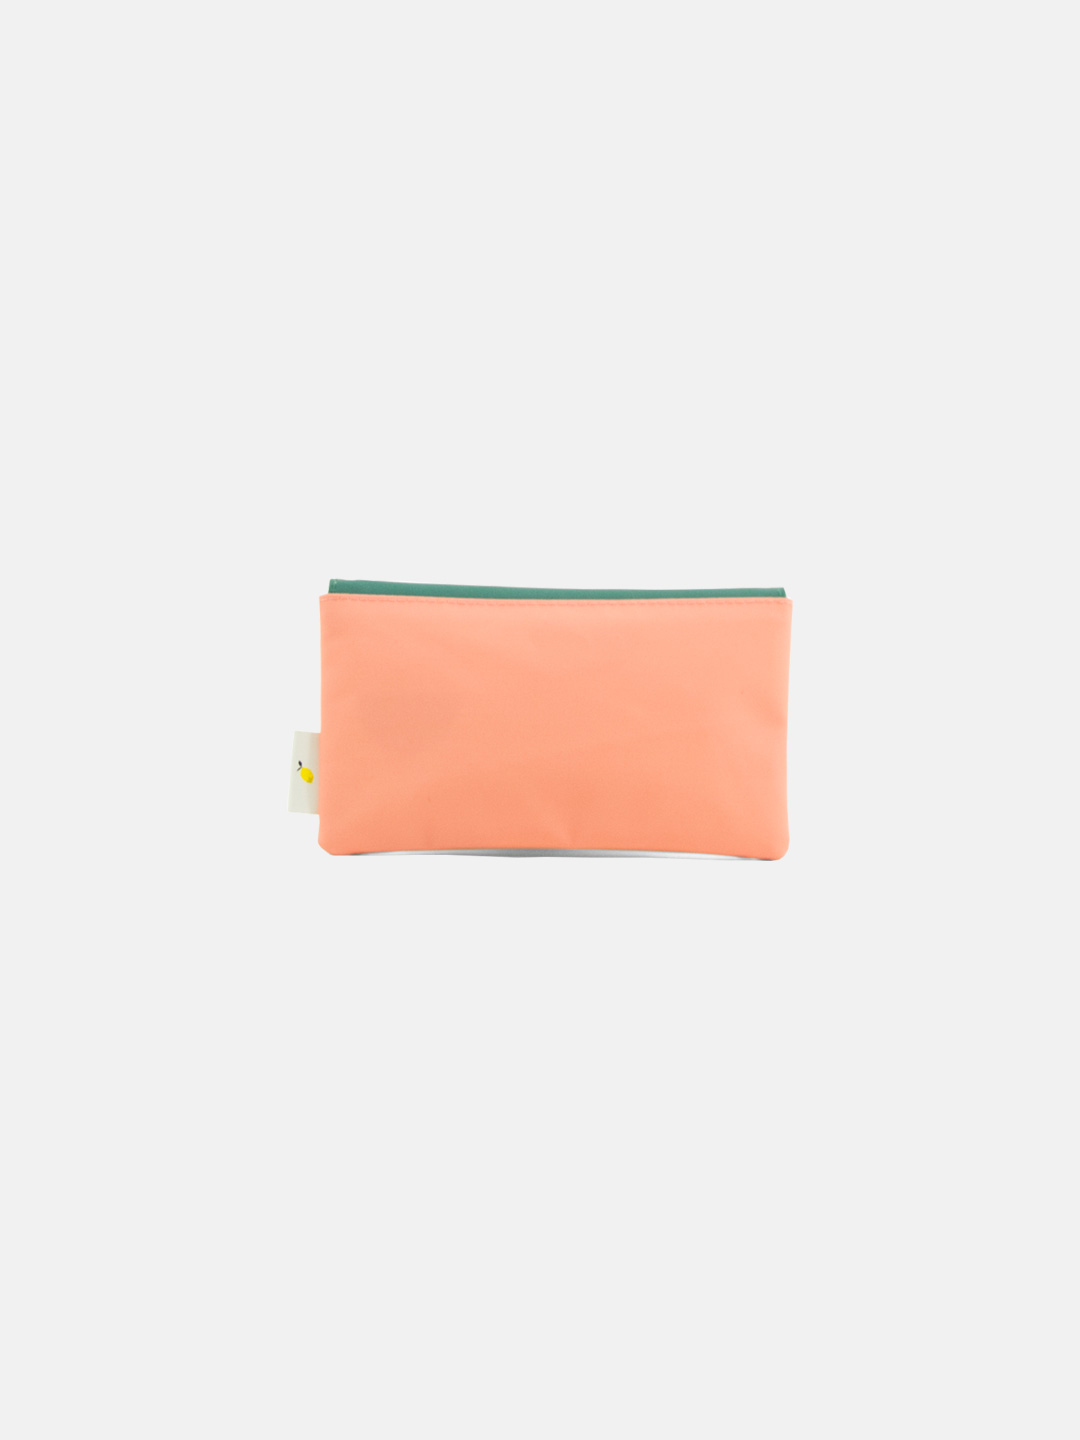 Pencil Case - Envelope Powder Blue